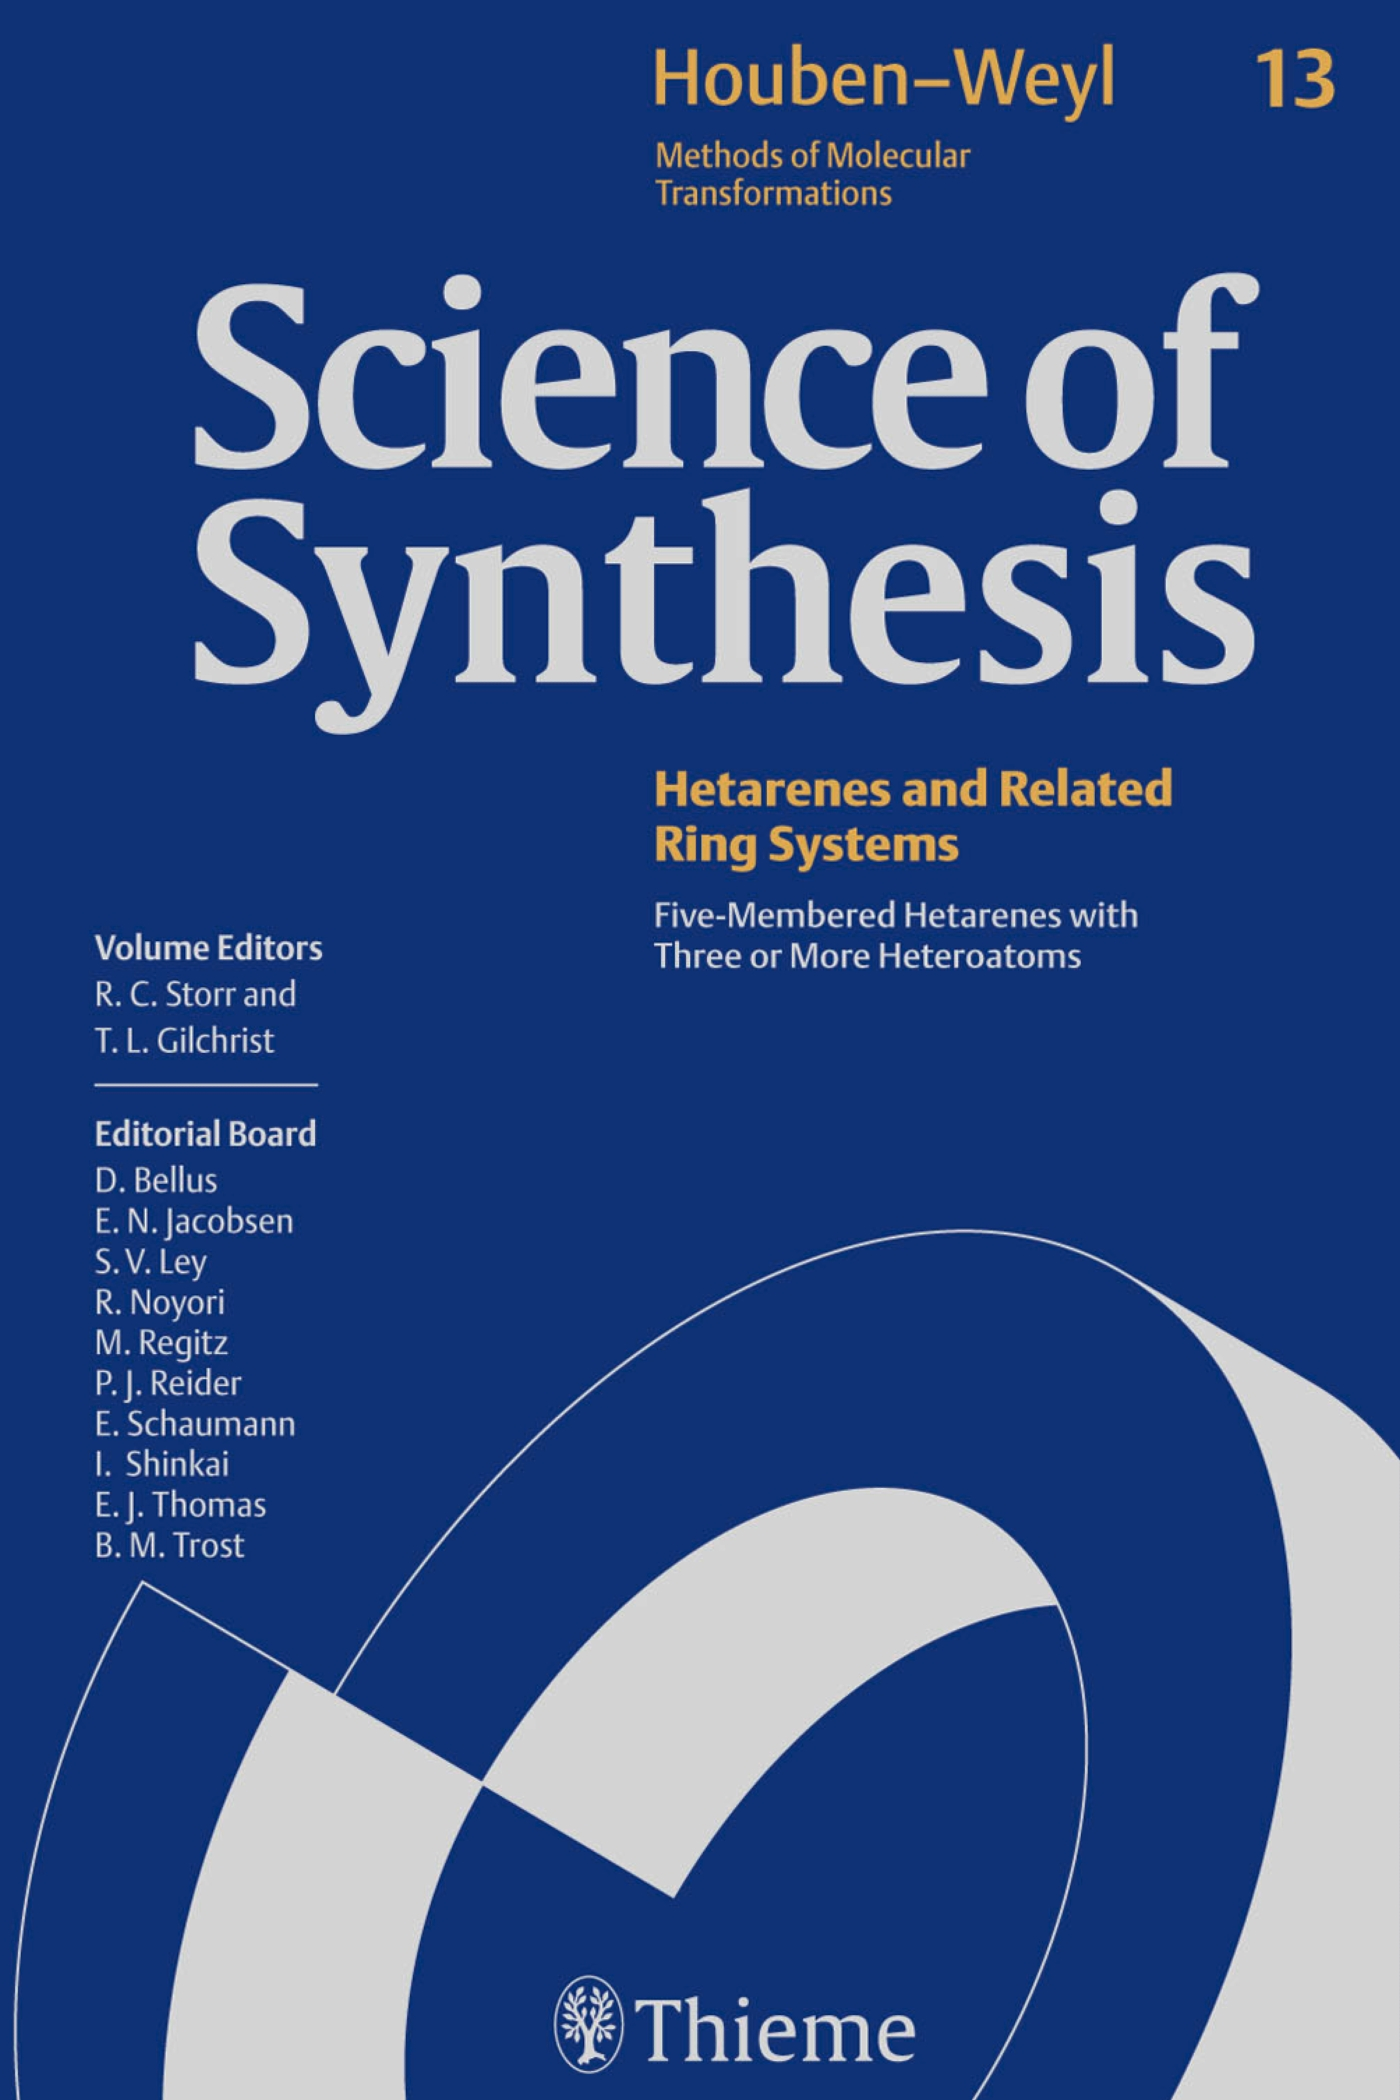 Science of Synthesis: Houben-Weyl Methods of Molecular Transformations  Vol. 13